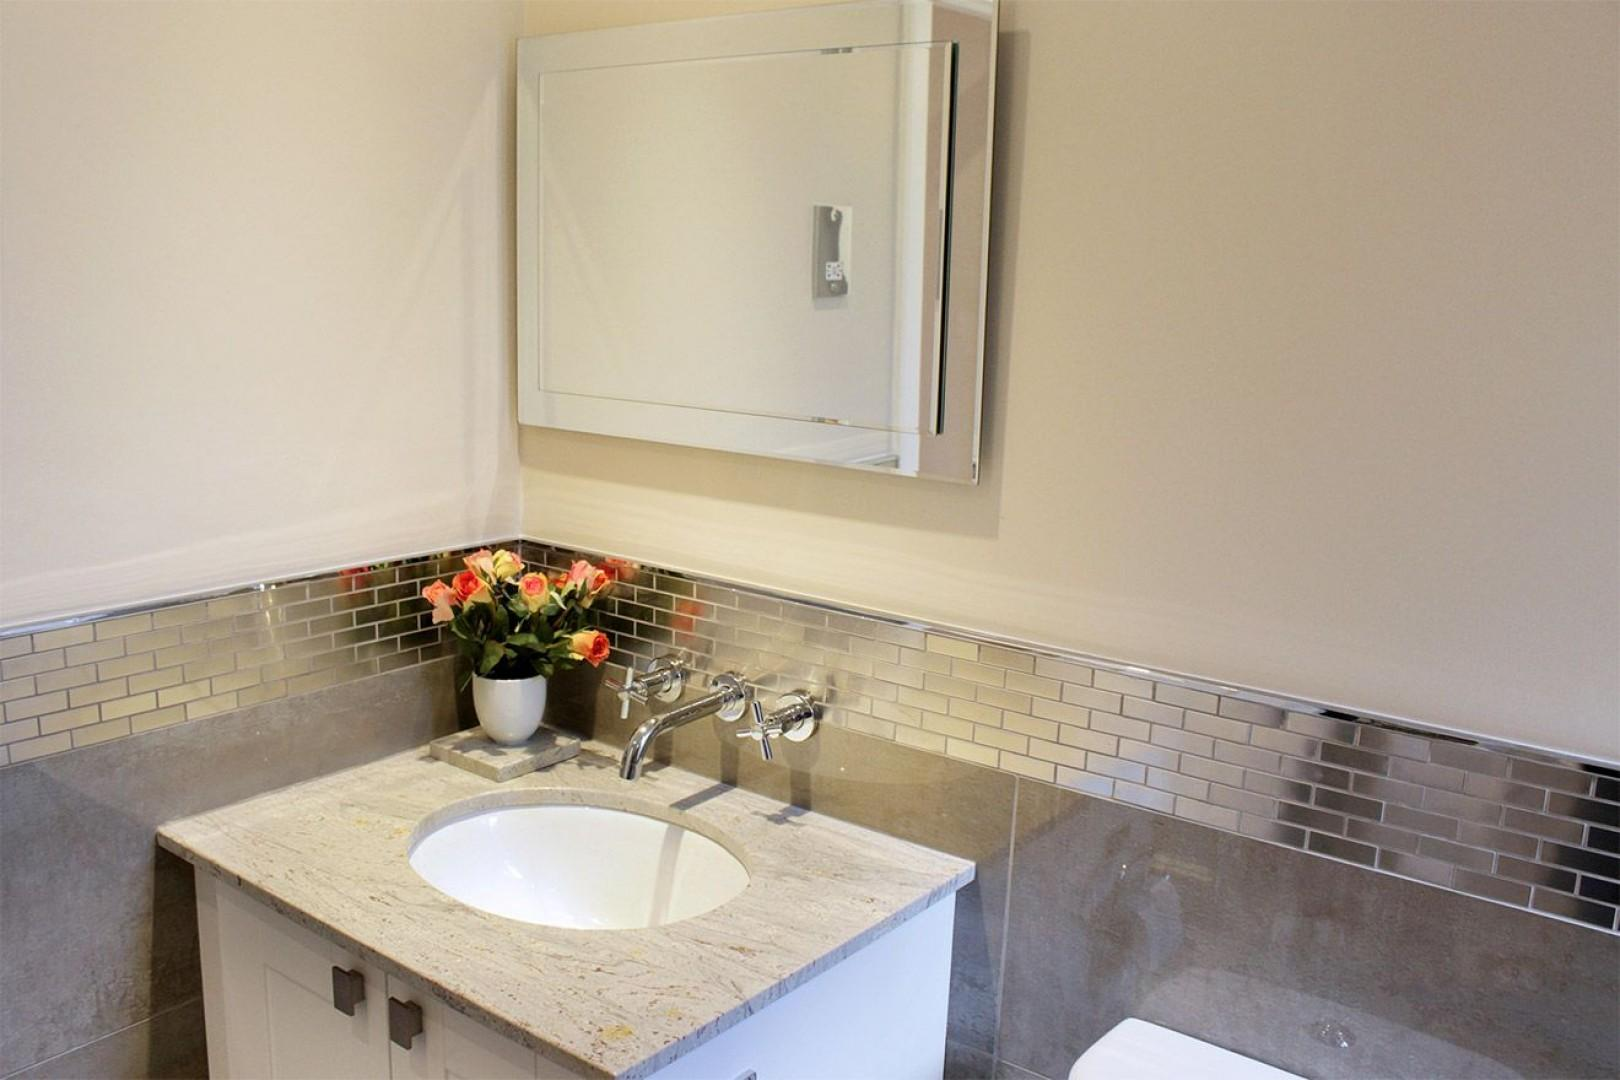 Sink with marble top and vanity mirror